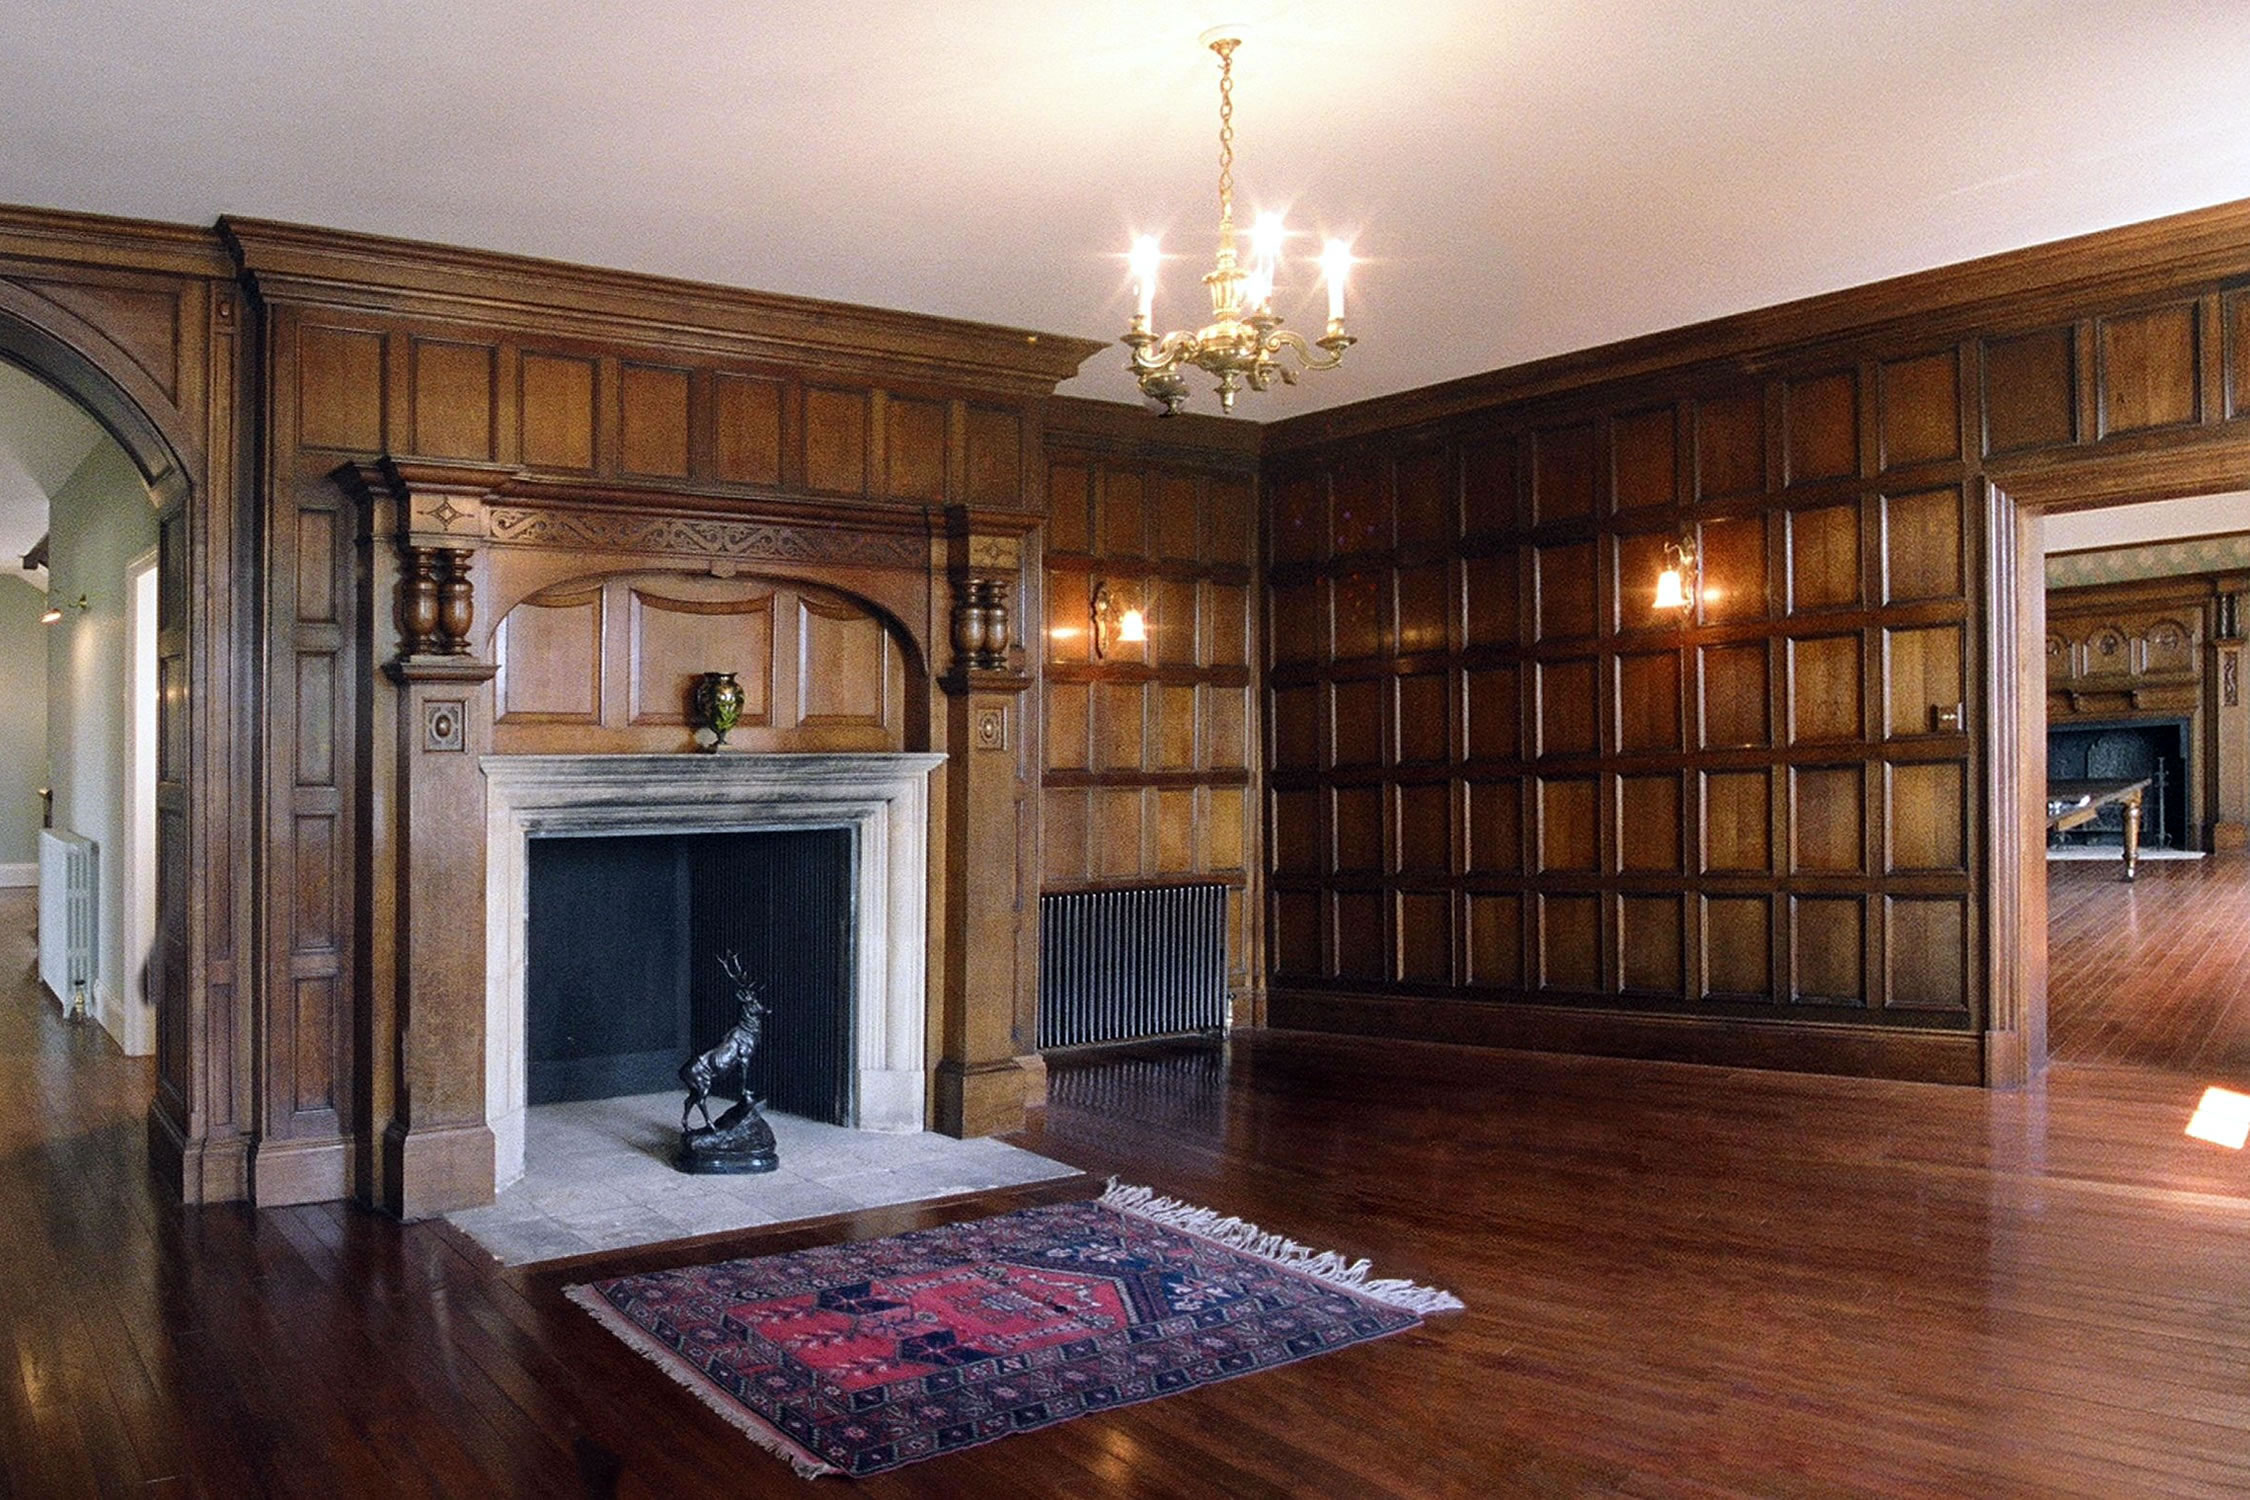 Arts & Crafts style oak panelling and fire surround